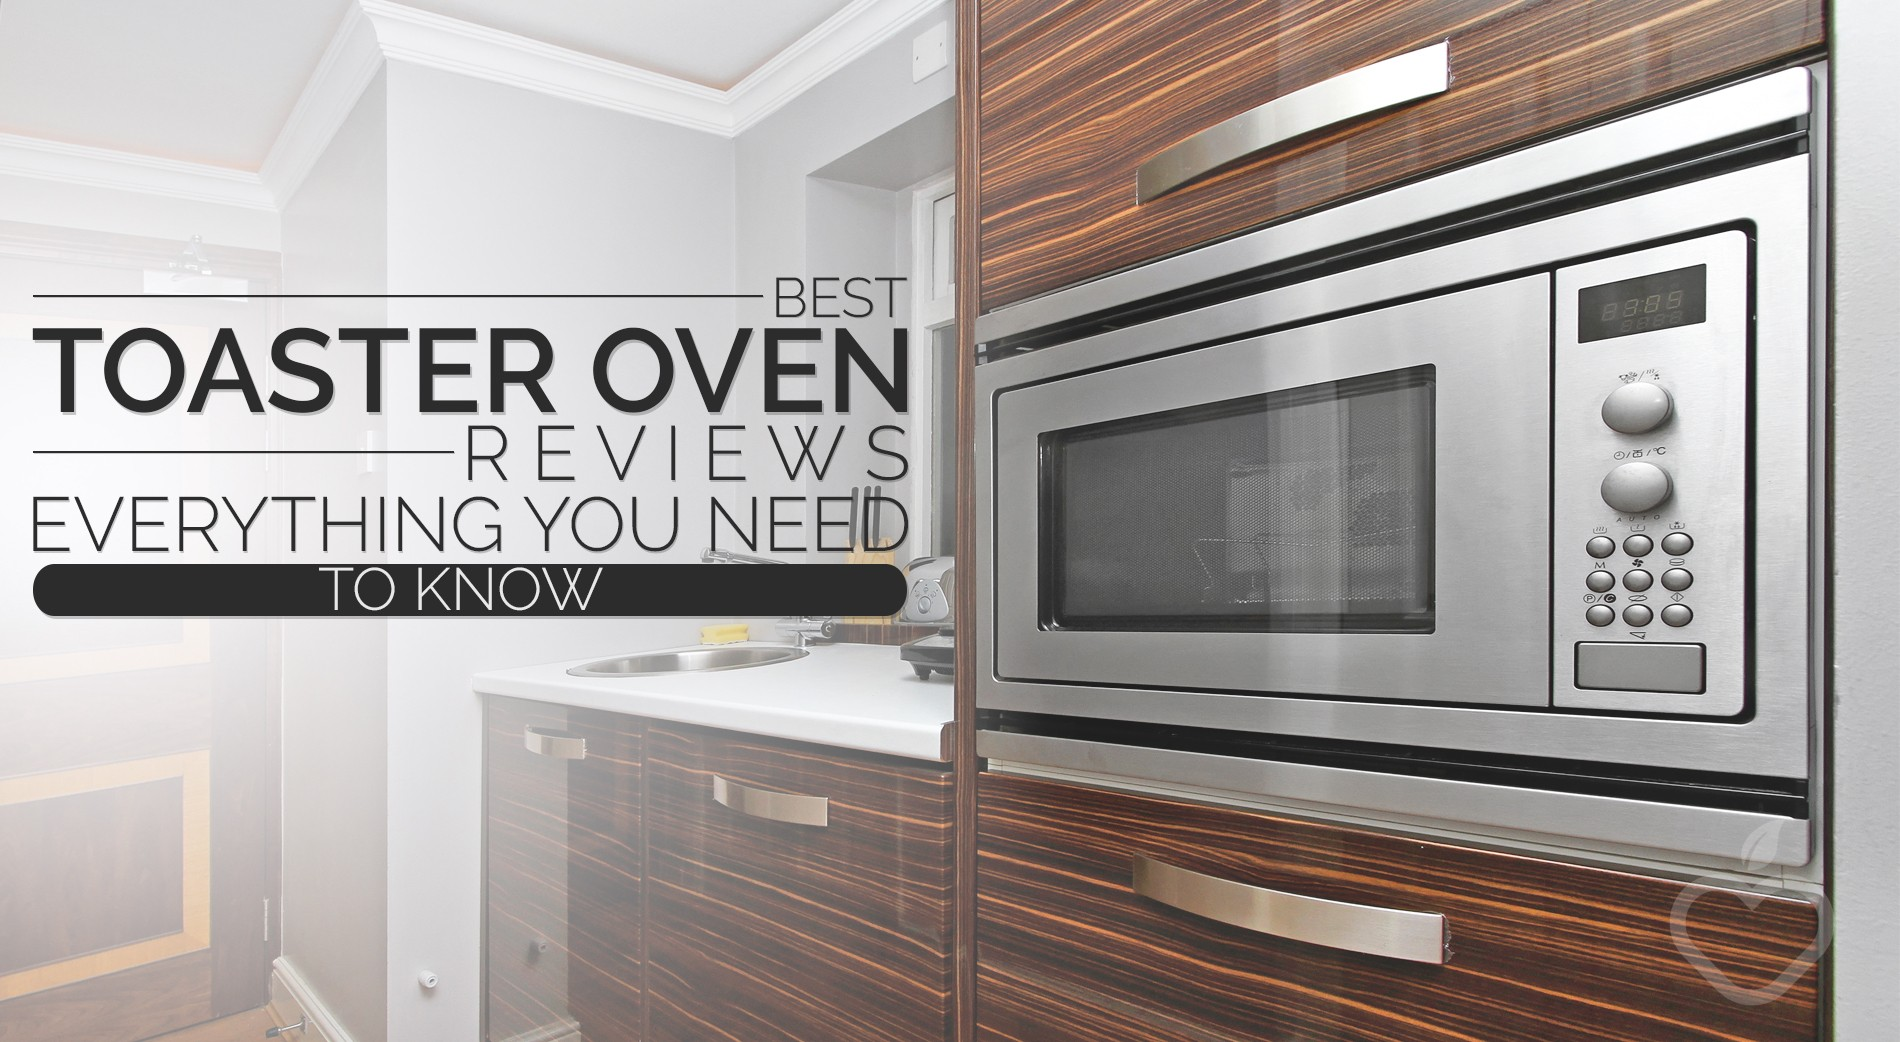 toaster-oven-image-design-1